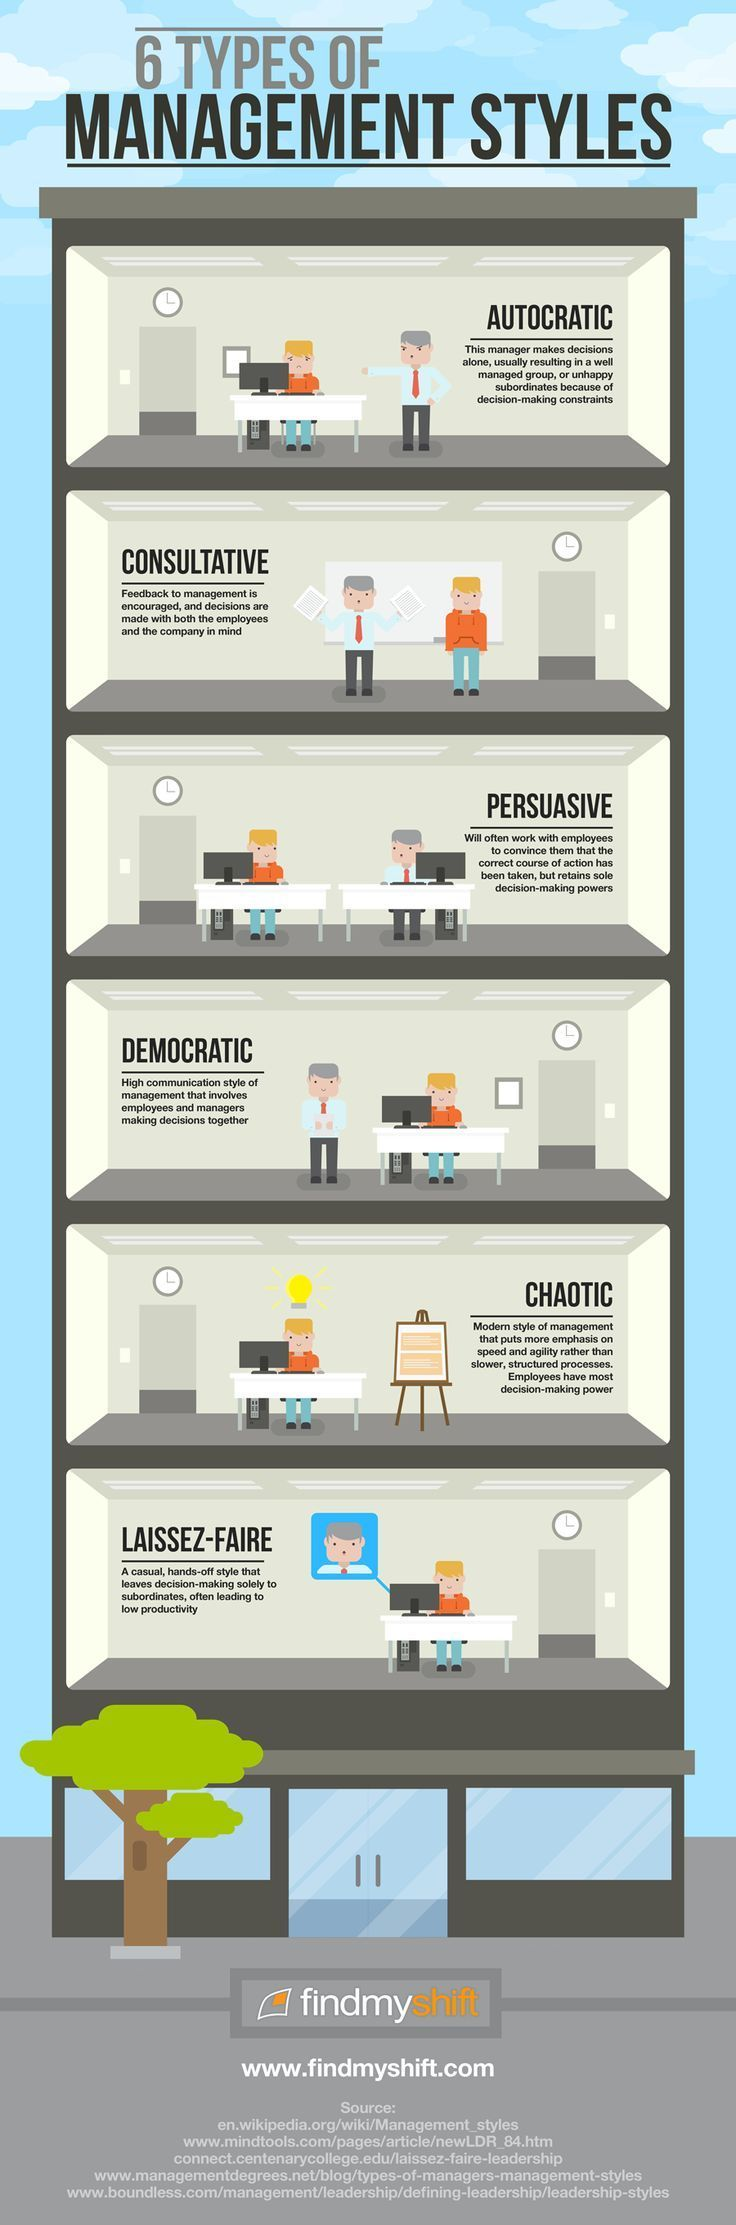 6 Types of Management Styles #Infographic #Entrepreneur #Management